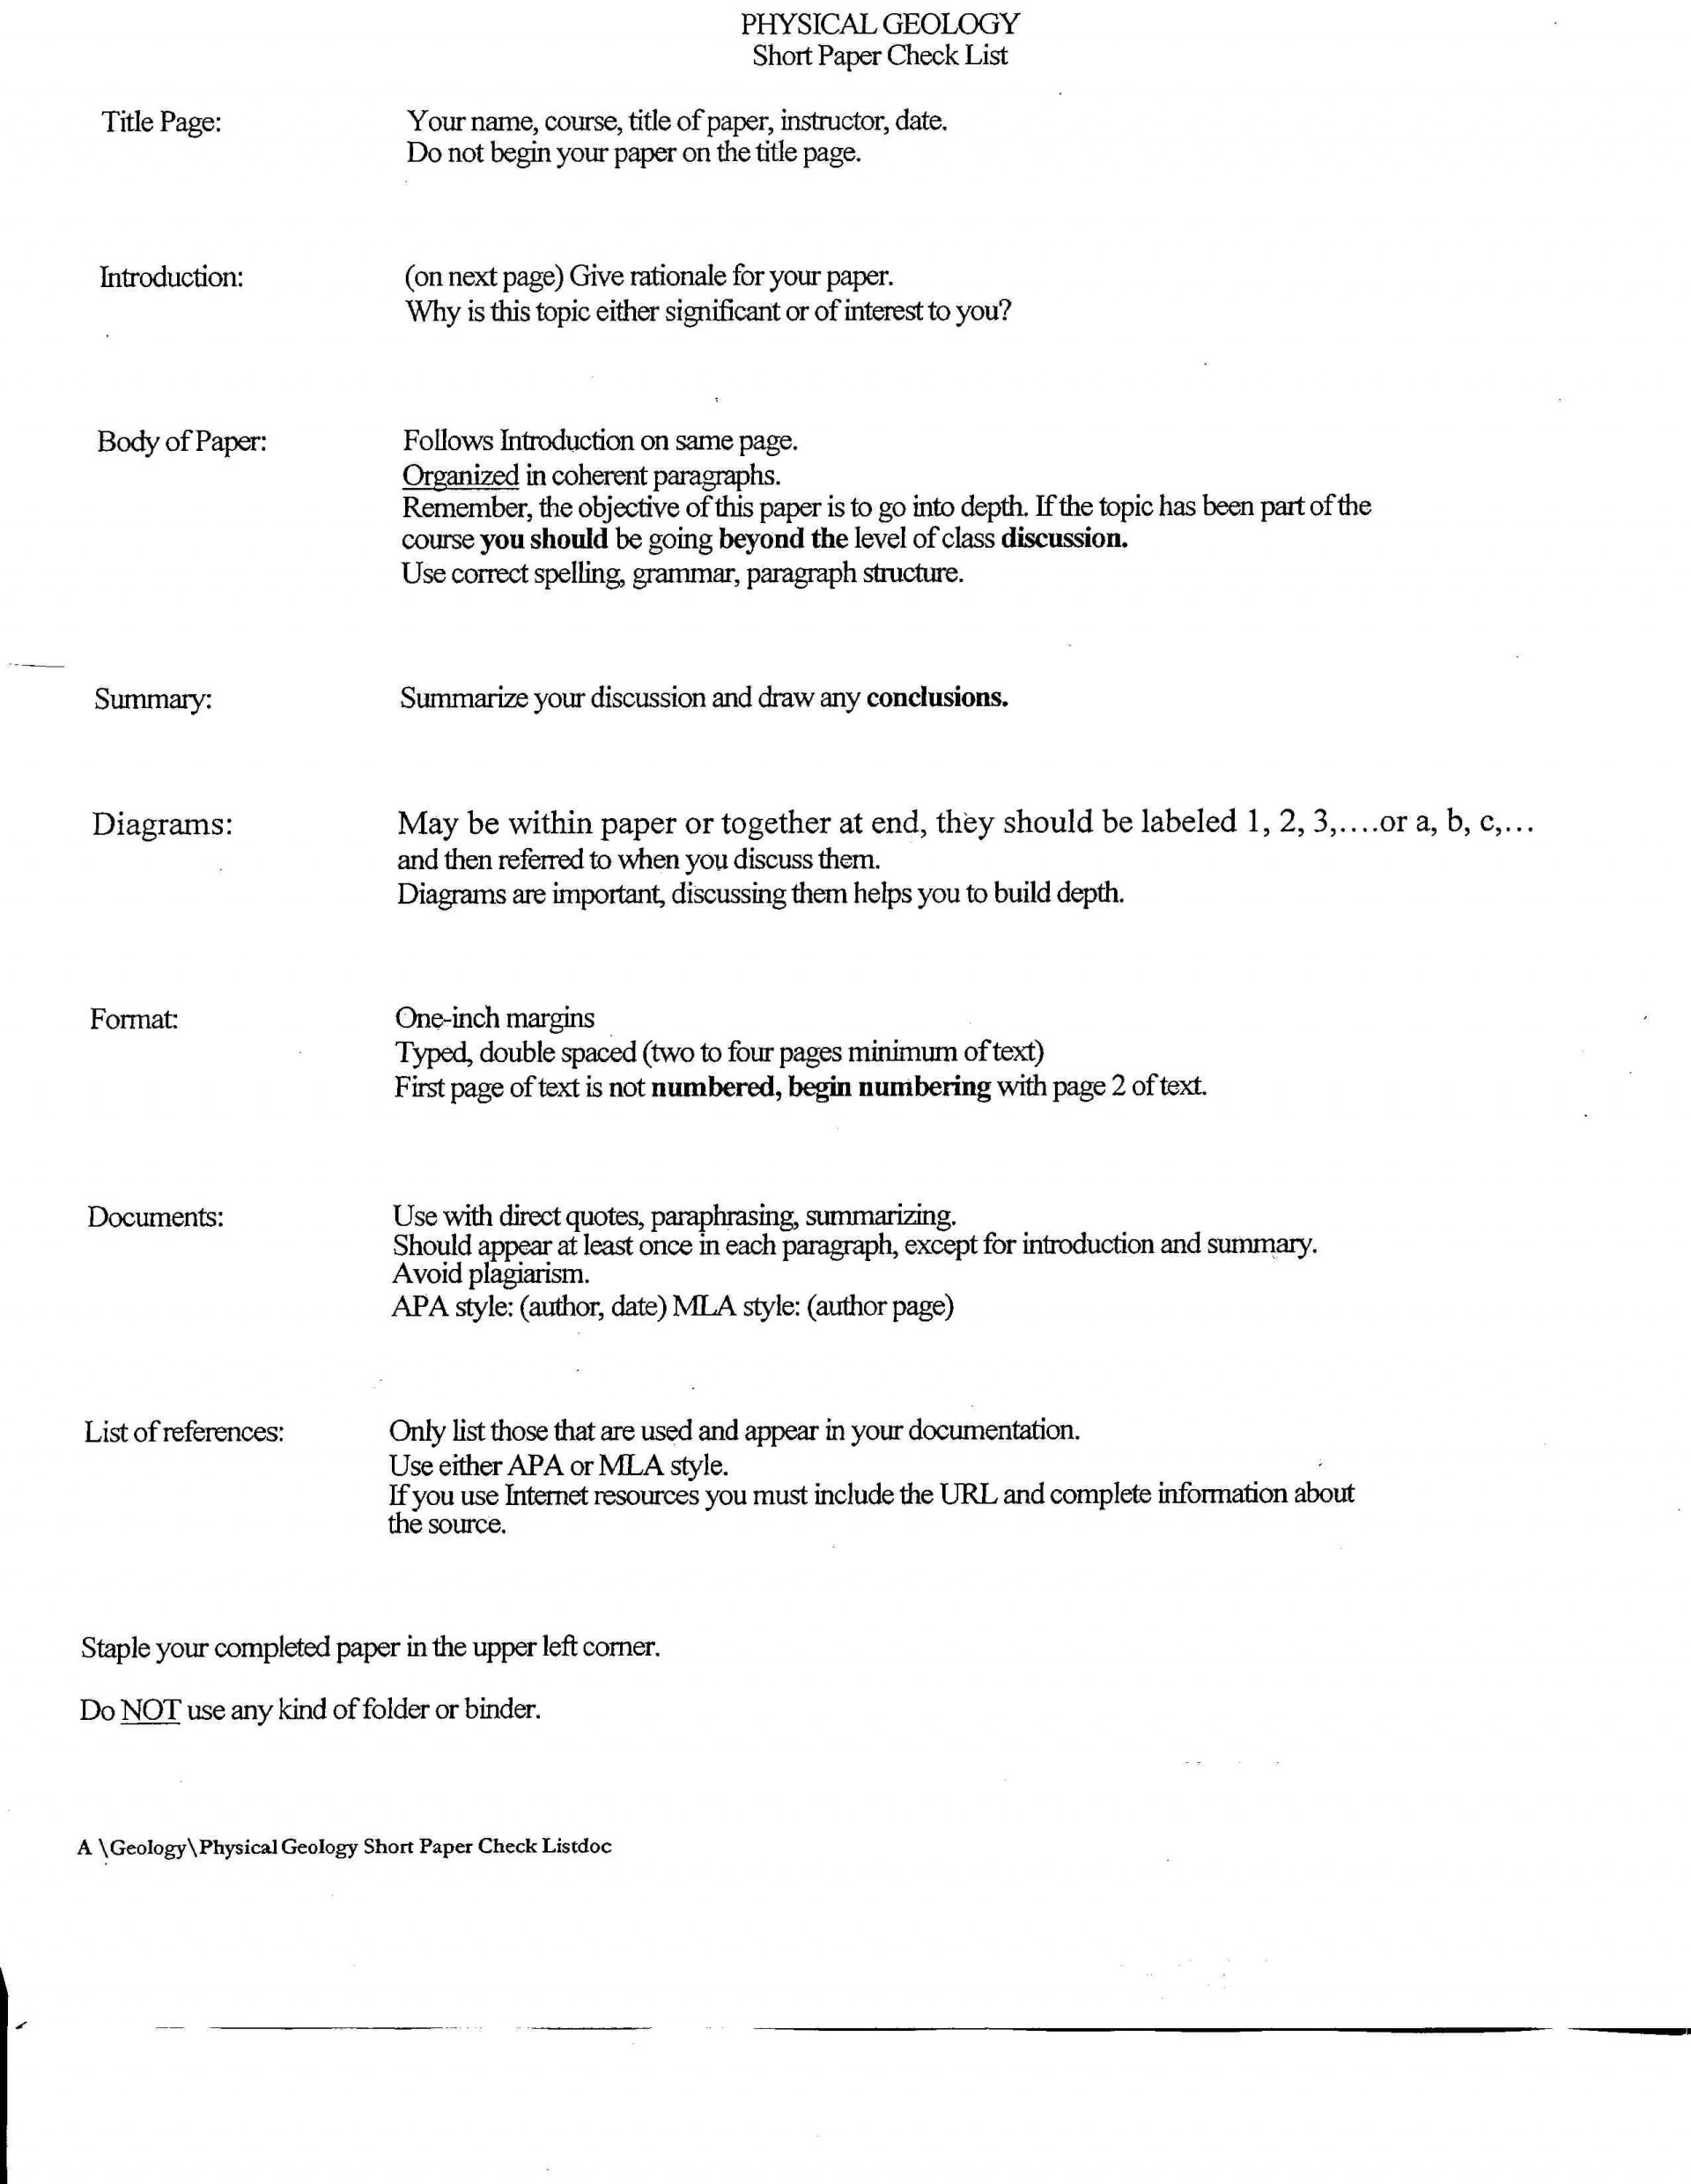 003 Good Topics For Research Paper In College Short Checklist Breathtaking Interesting Students Papers 1920